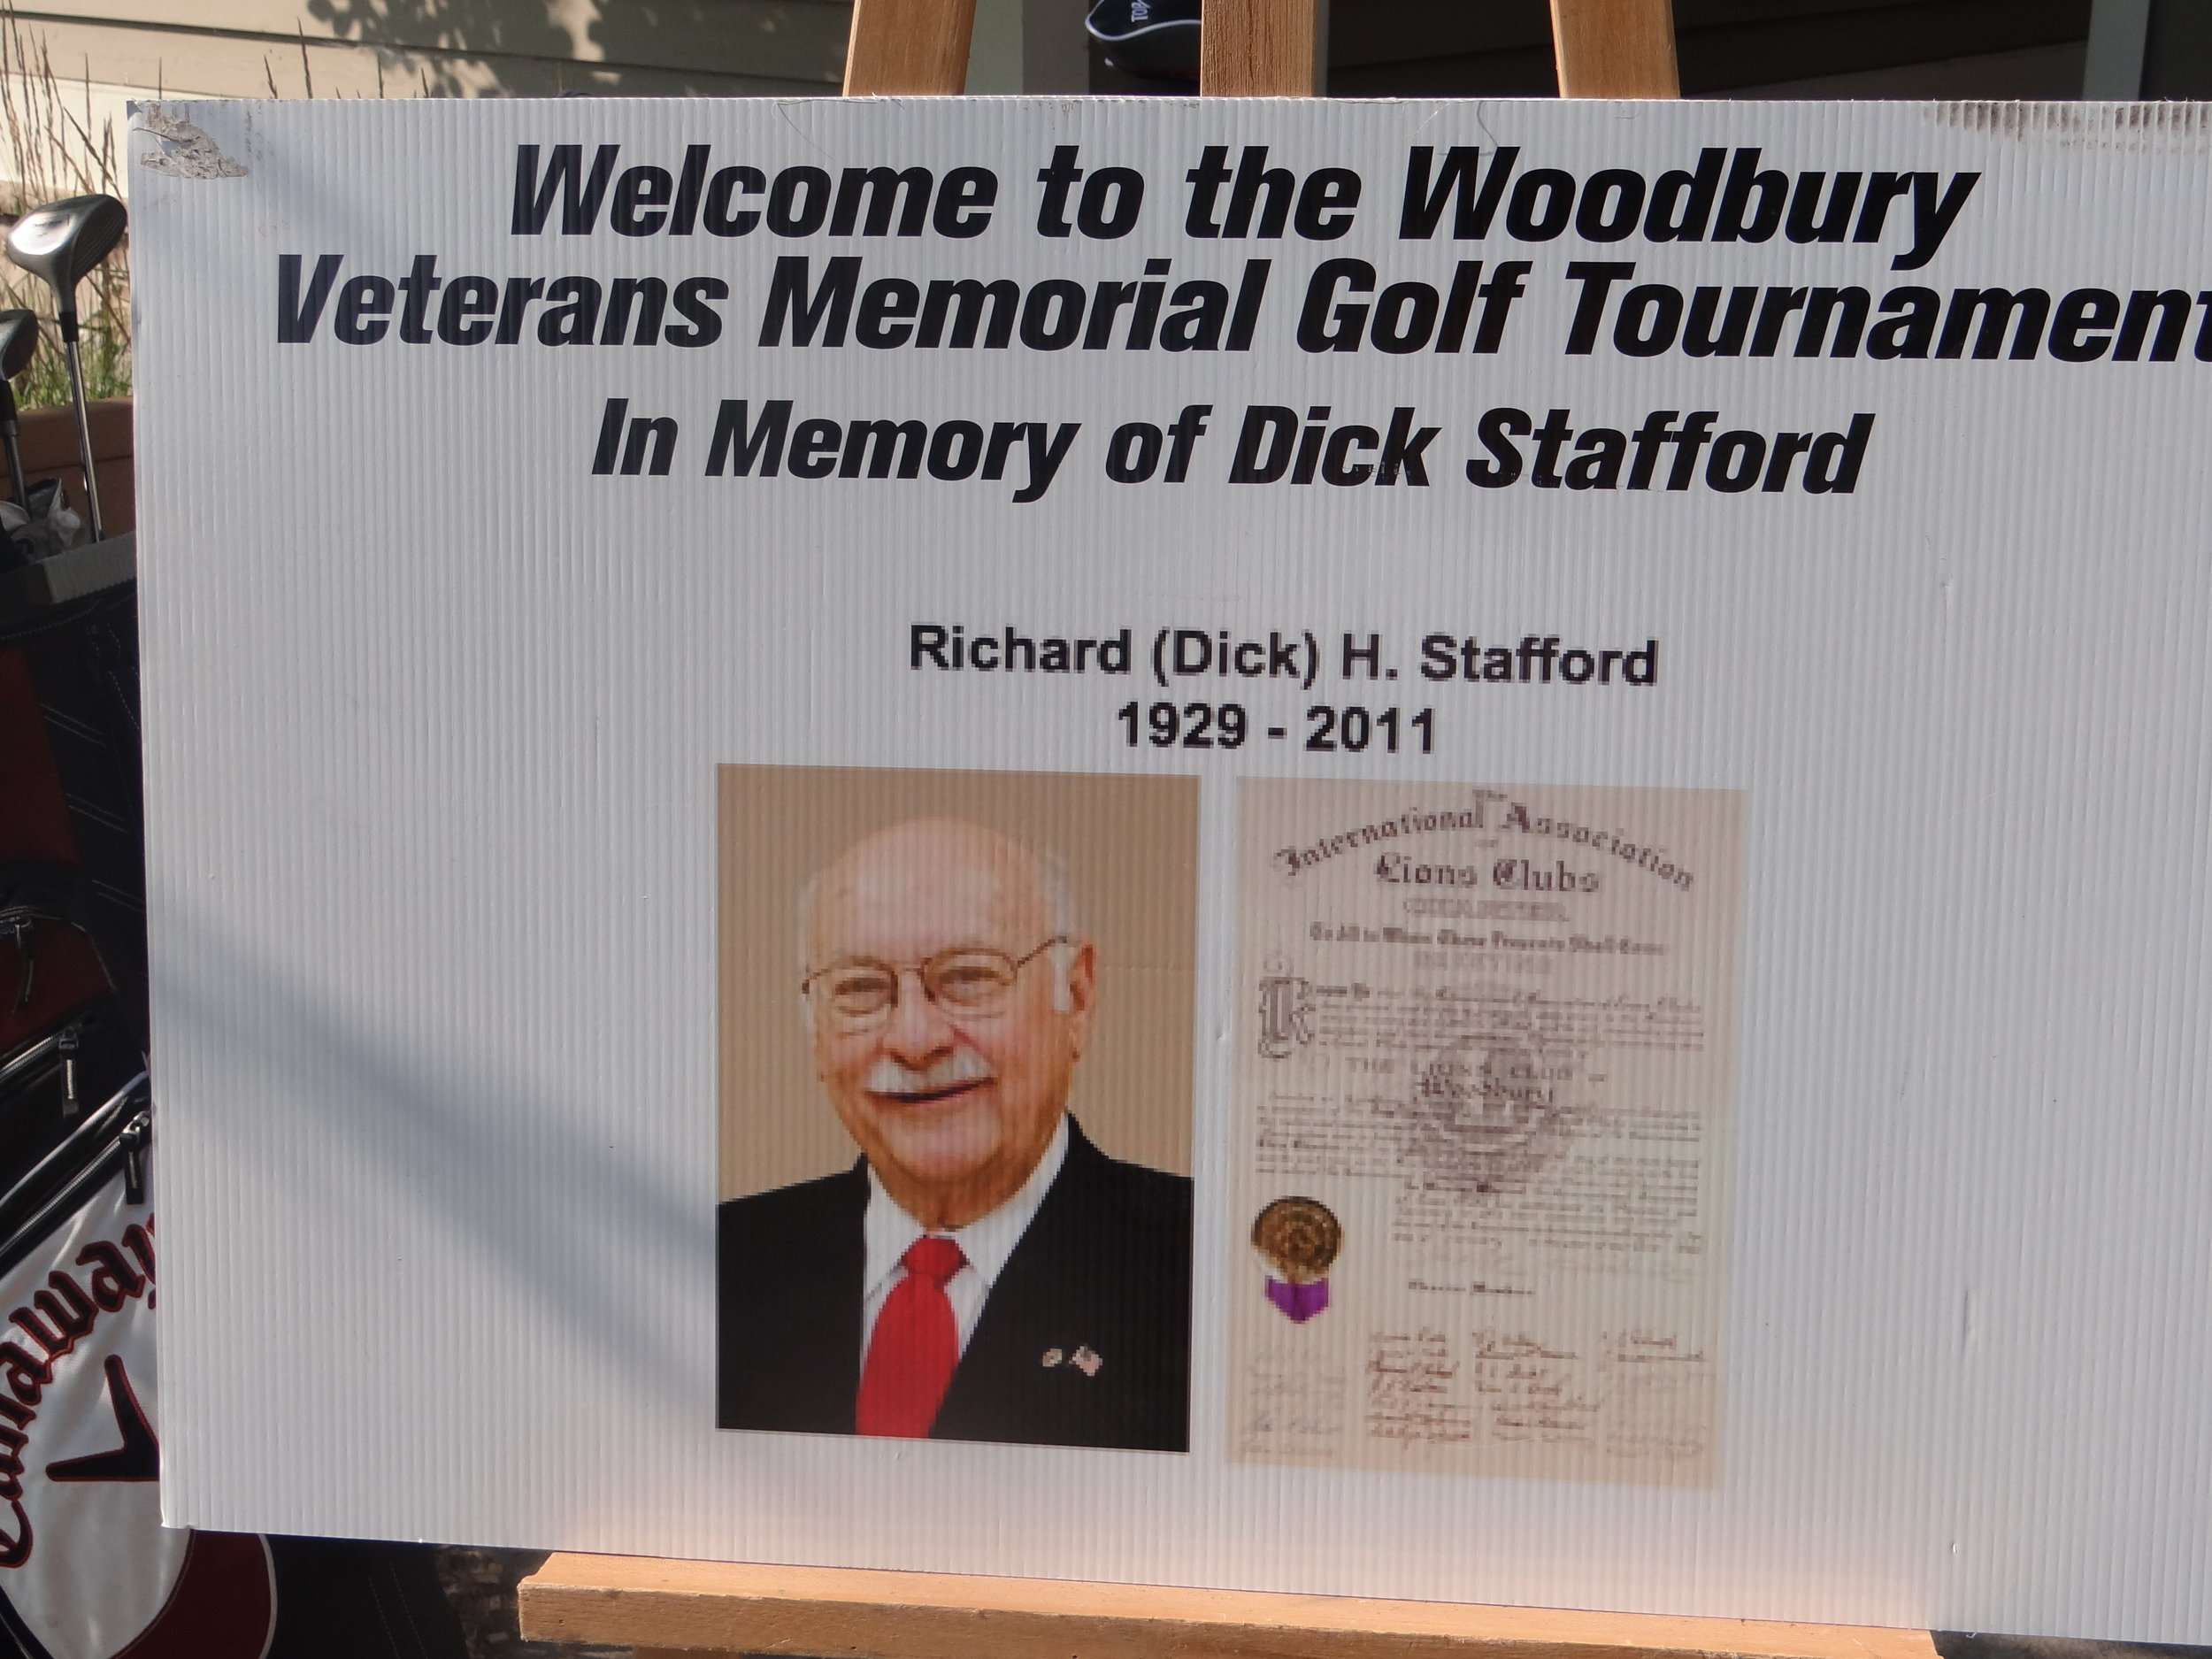 August 12th, 2019 will be the 9th annual Lions Golf Tournament in Memory of Dick Stafford.